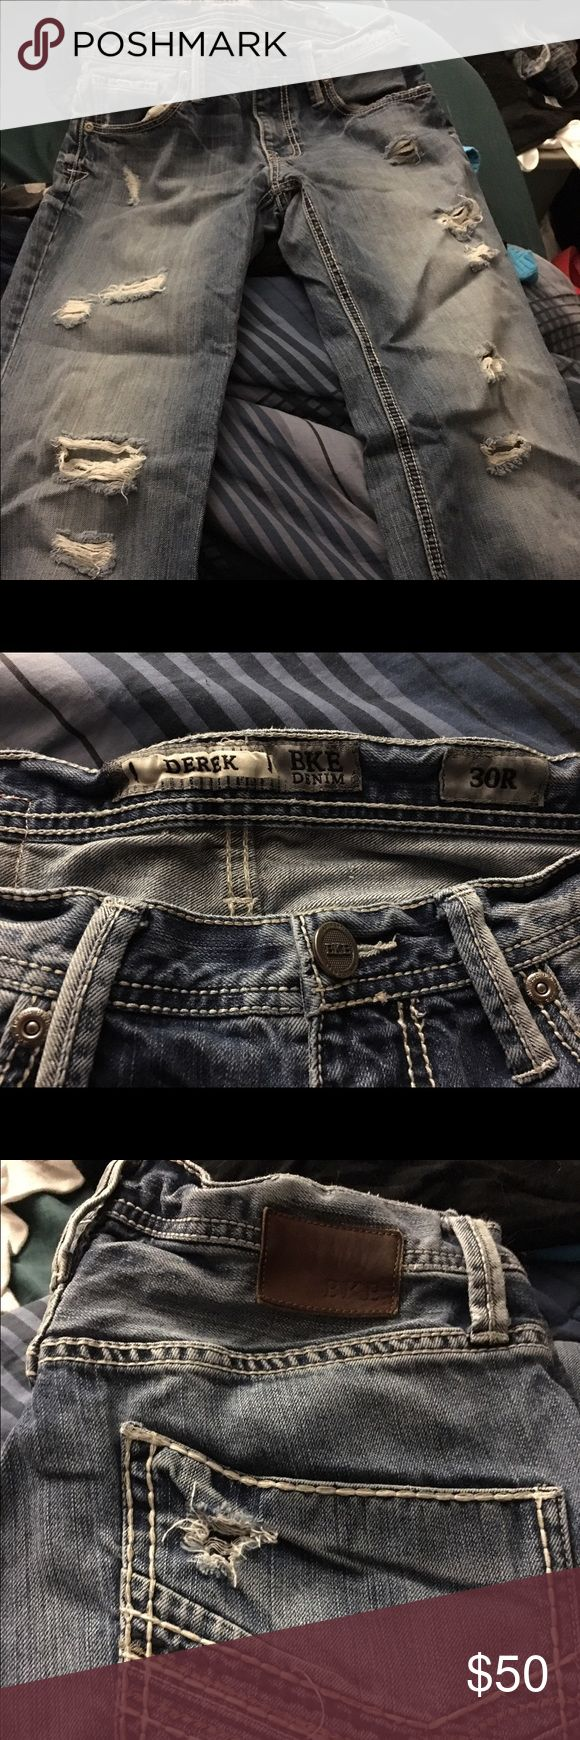 Men's Buckle jeans Men's buckle jeans in the destroyed look Buckle Jeans Bootcut